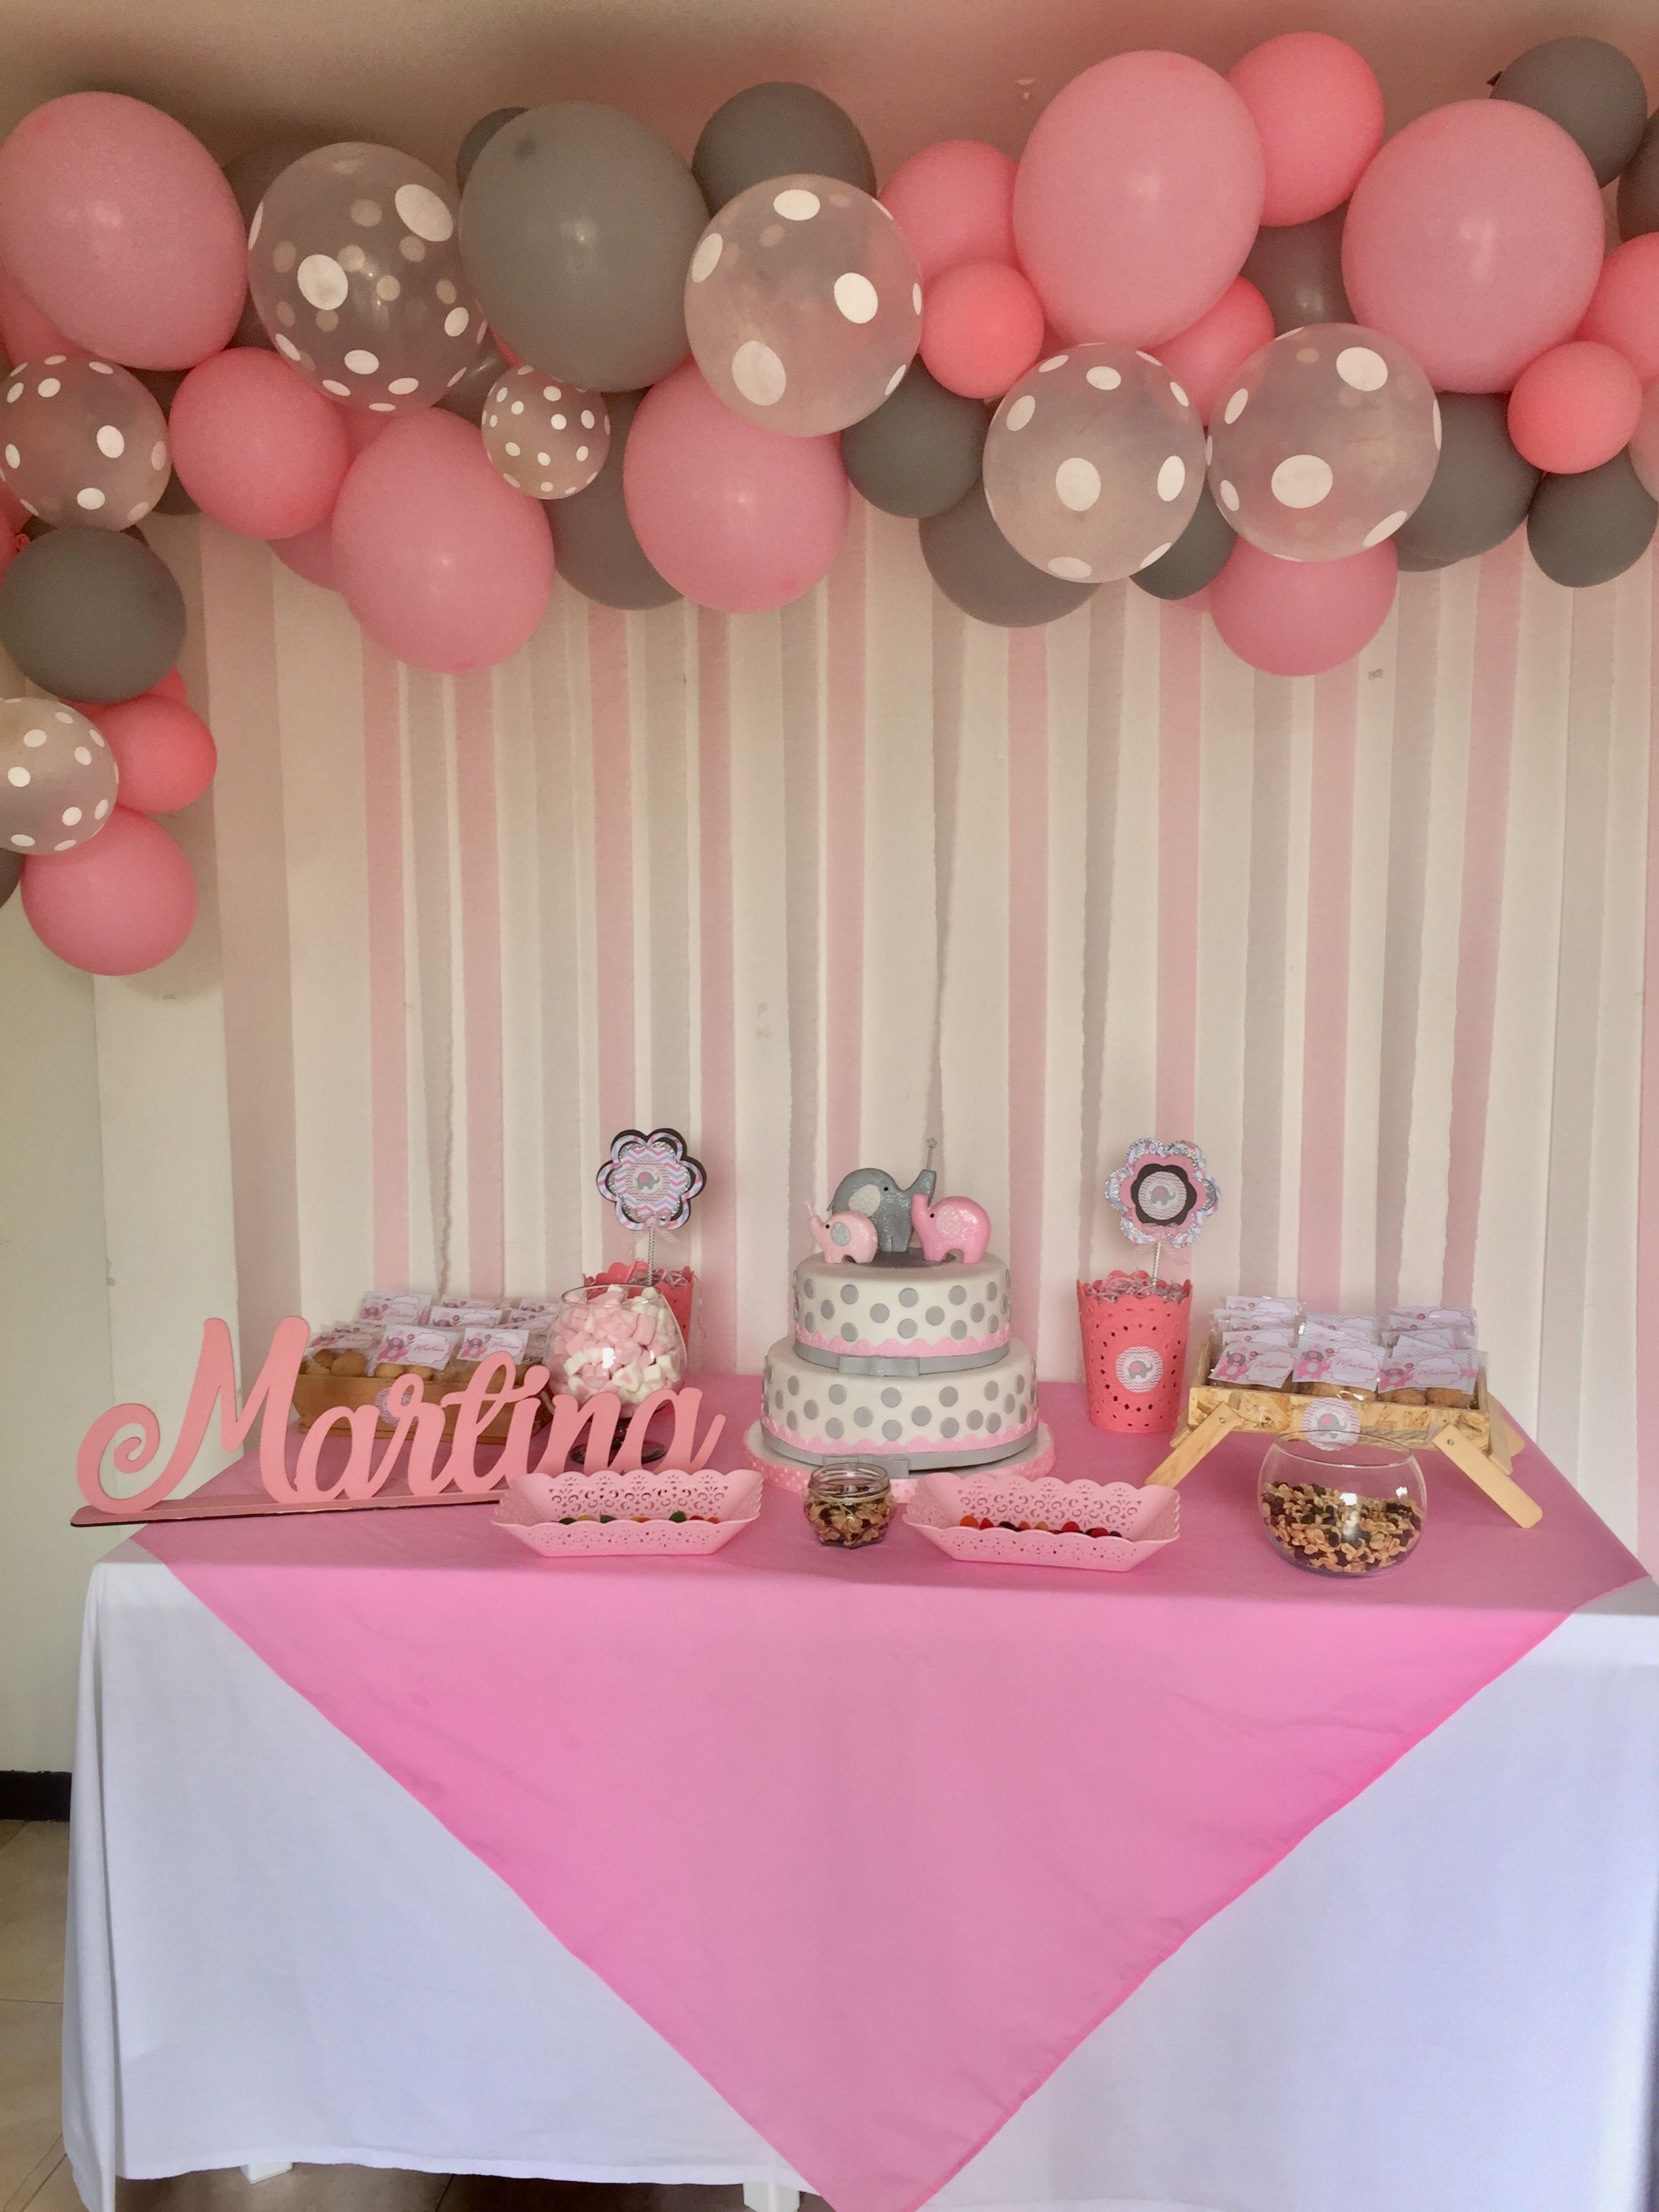 Ideas De Decoracion Baby Shower Nina.Baby Shower Ideas En 2020 Juegos De Fiesta Shower